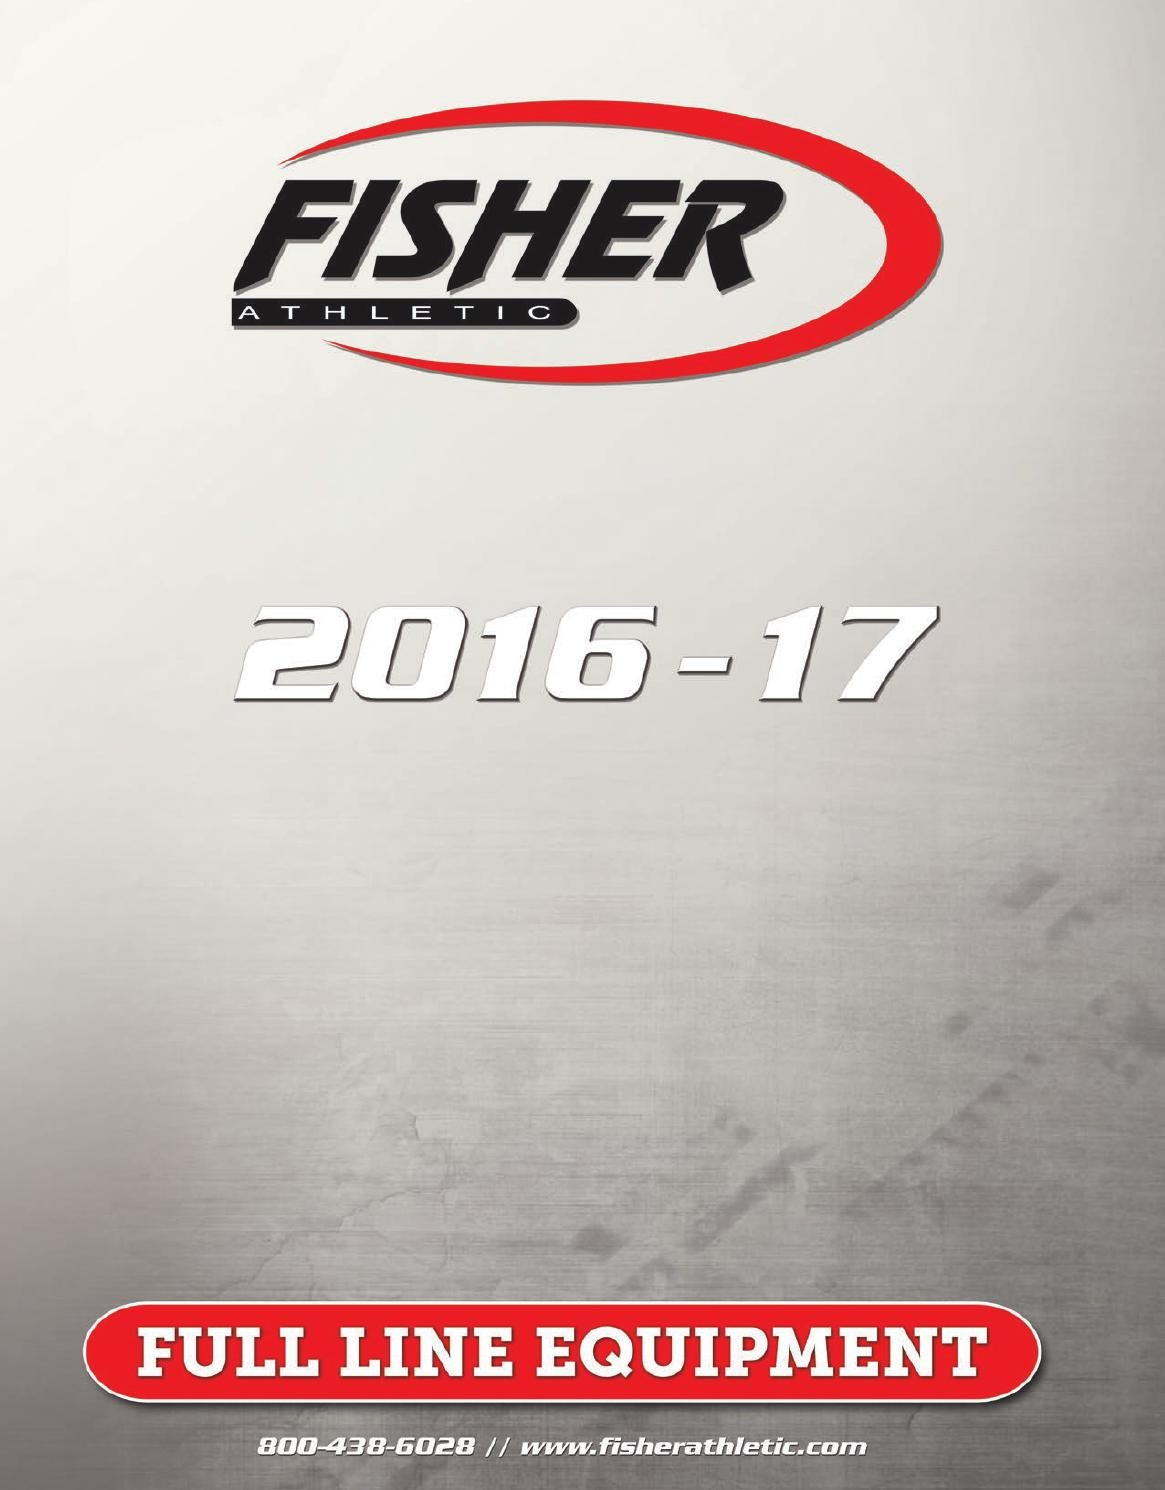 ed914f81b Fisher Athletic 2016-17 Master Catalog by Fisher Athletic - issuu